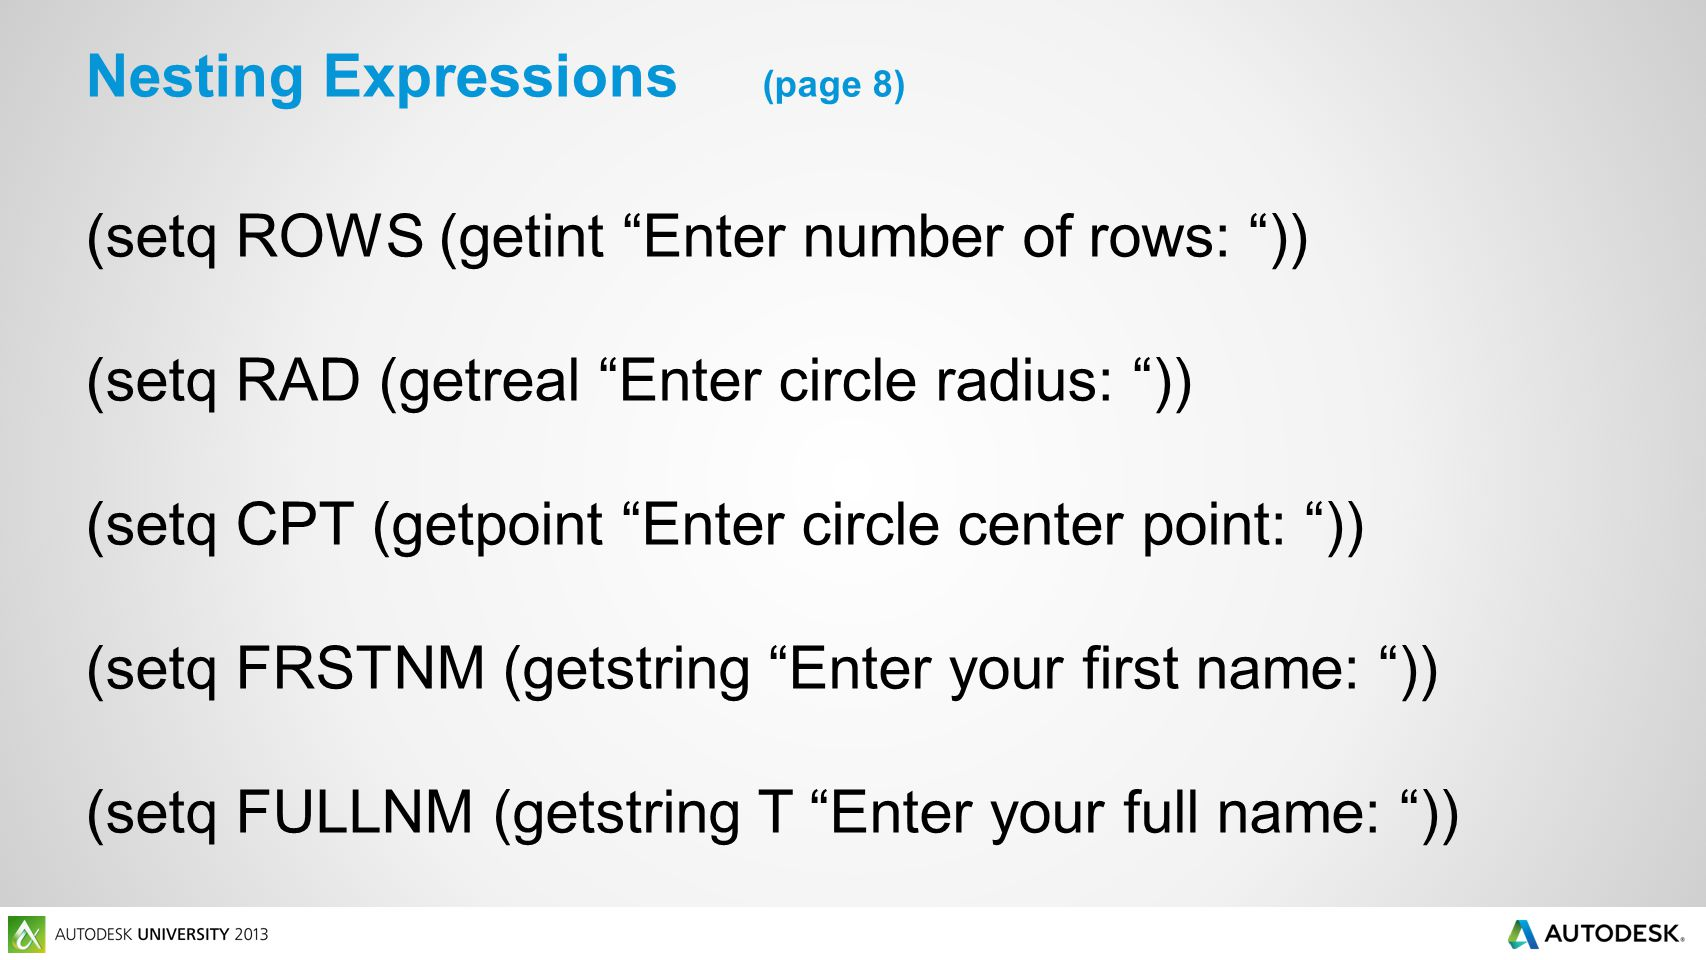 (setq ROWS (getint Enter number of rows: )) (setq RAD (getreal Enter circle radius: )) (setq CPT (getpoint Enter circle center point: )) (setq FRSTNM (getstring Enter your first name: )) (setq FULLNM (getstring T Enter your full name: )) Nesting Expressions (page 8)